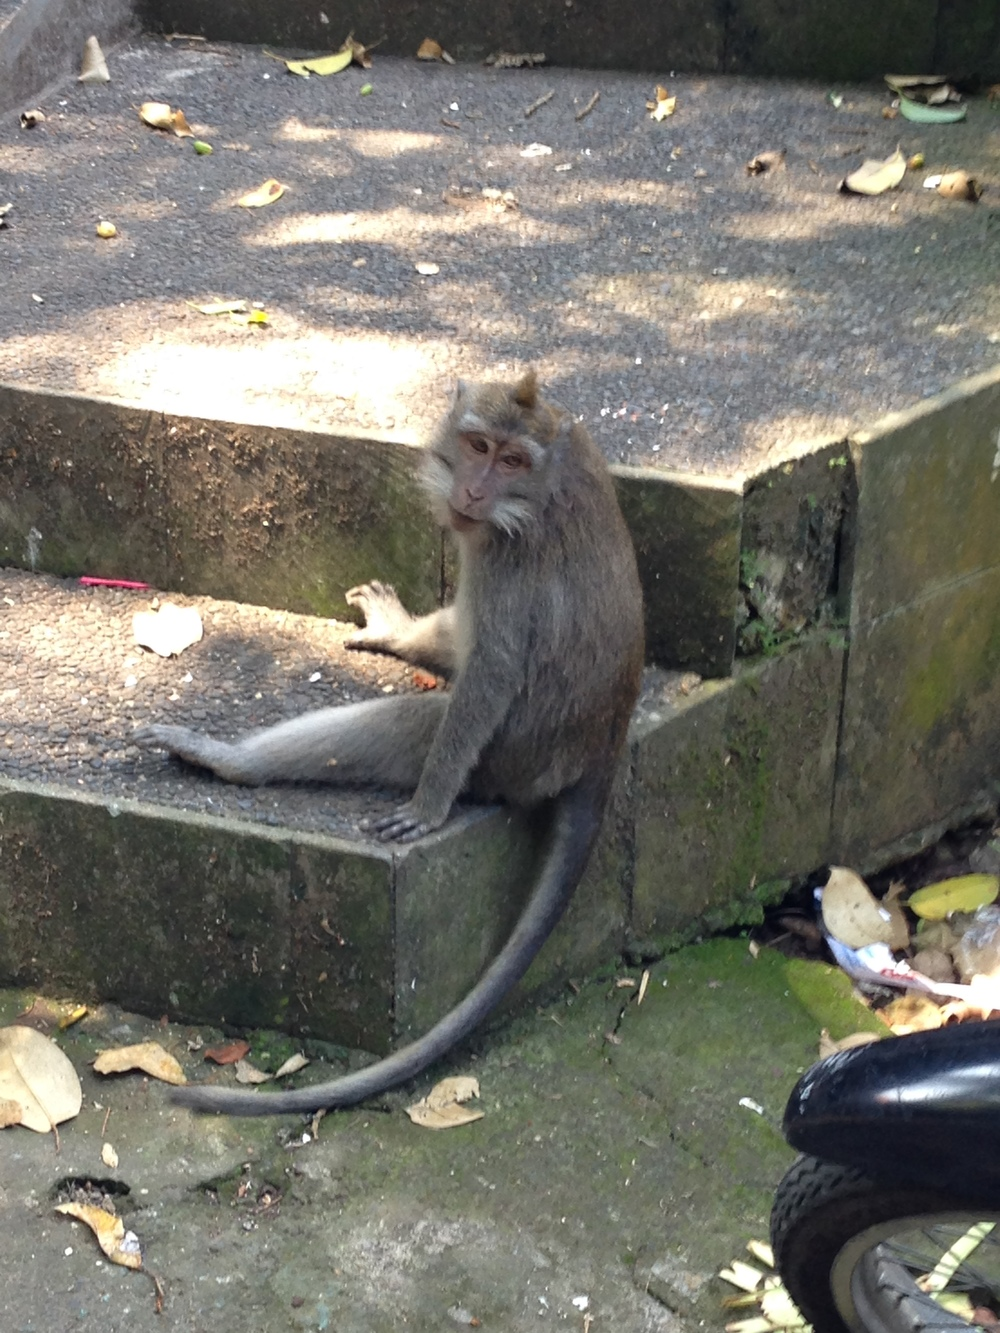 This monkey filled the monkey quota.